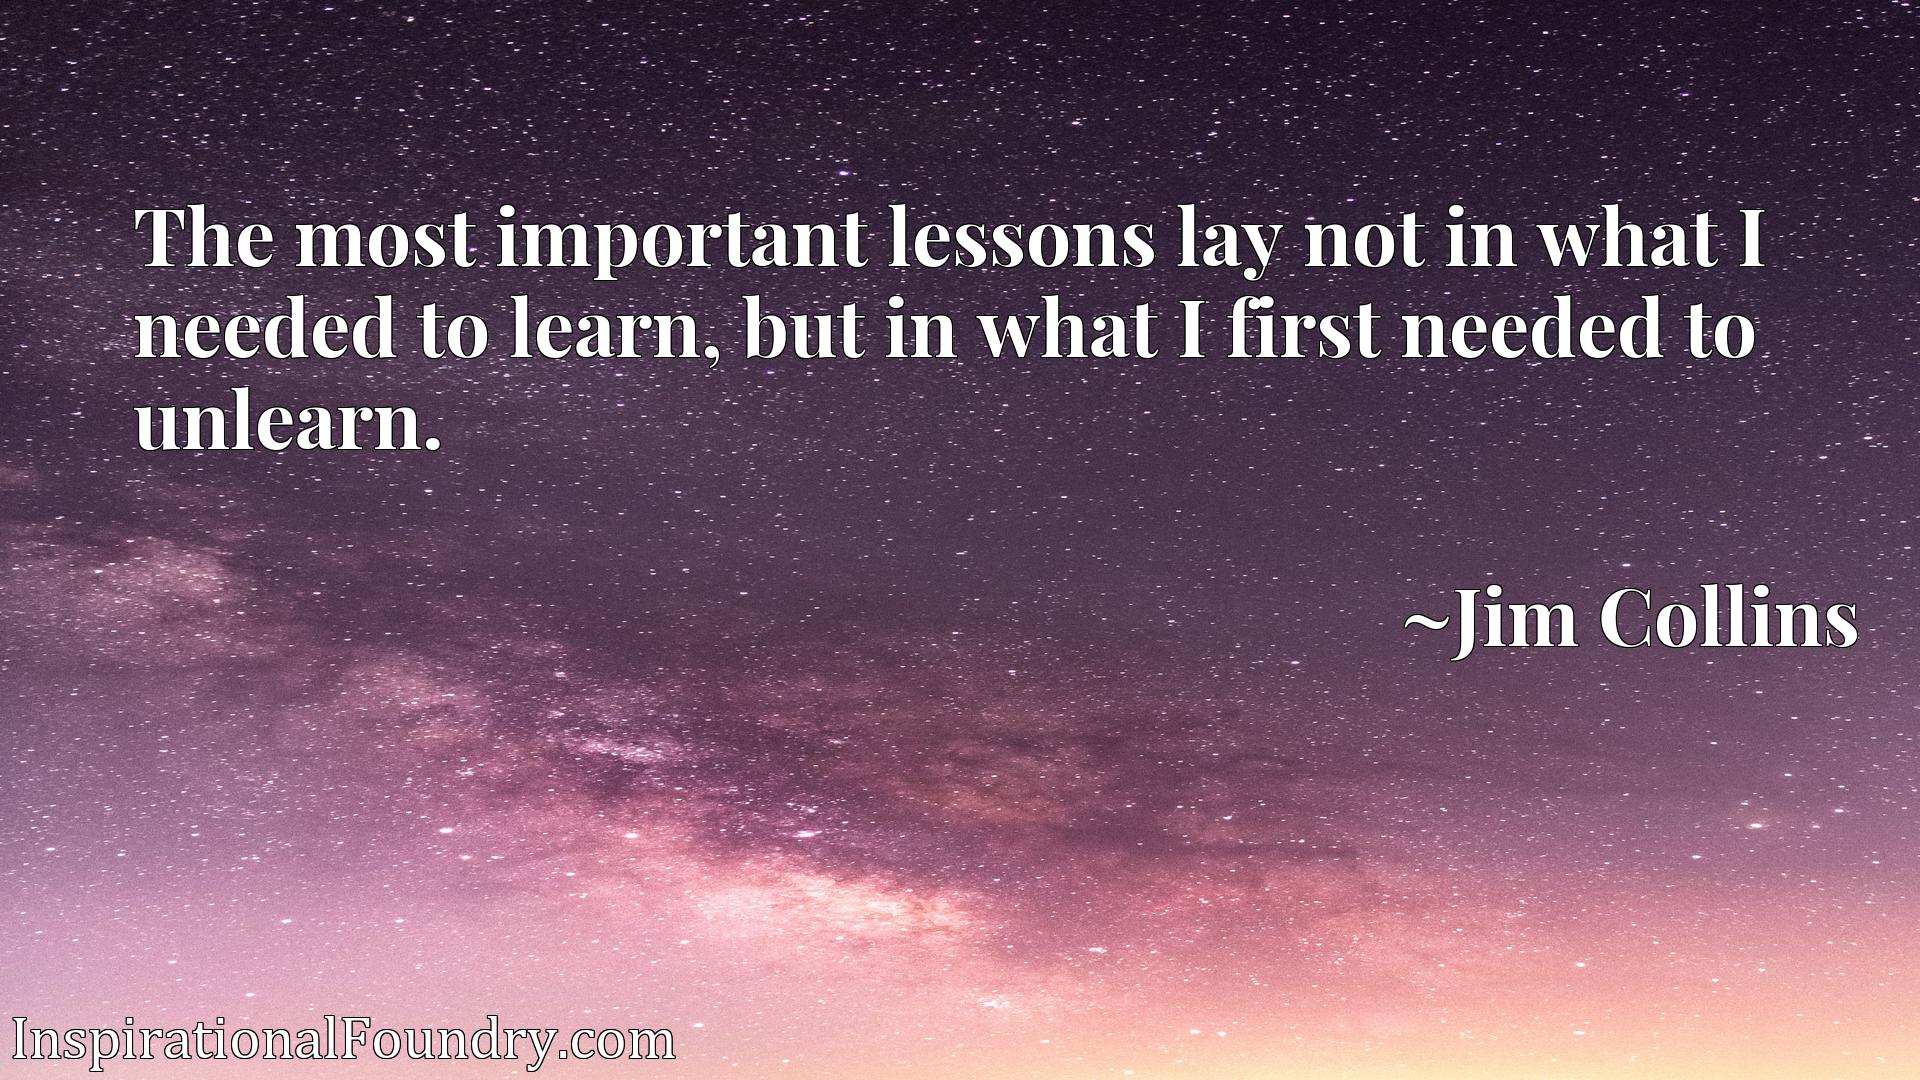 The most important lessons lay not in what I needed to learn, but in what I first needed to unlearn.